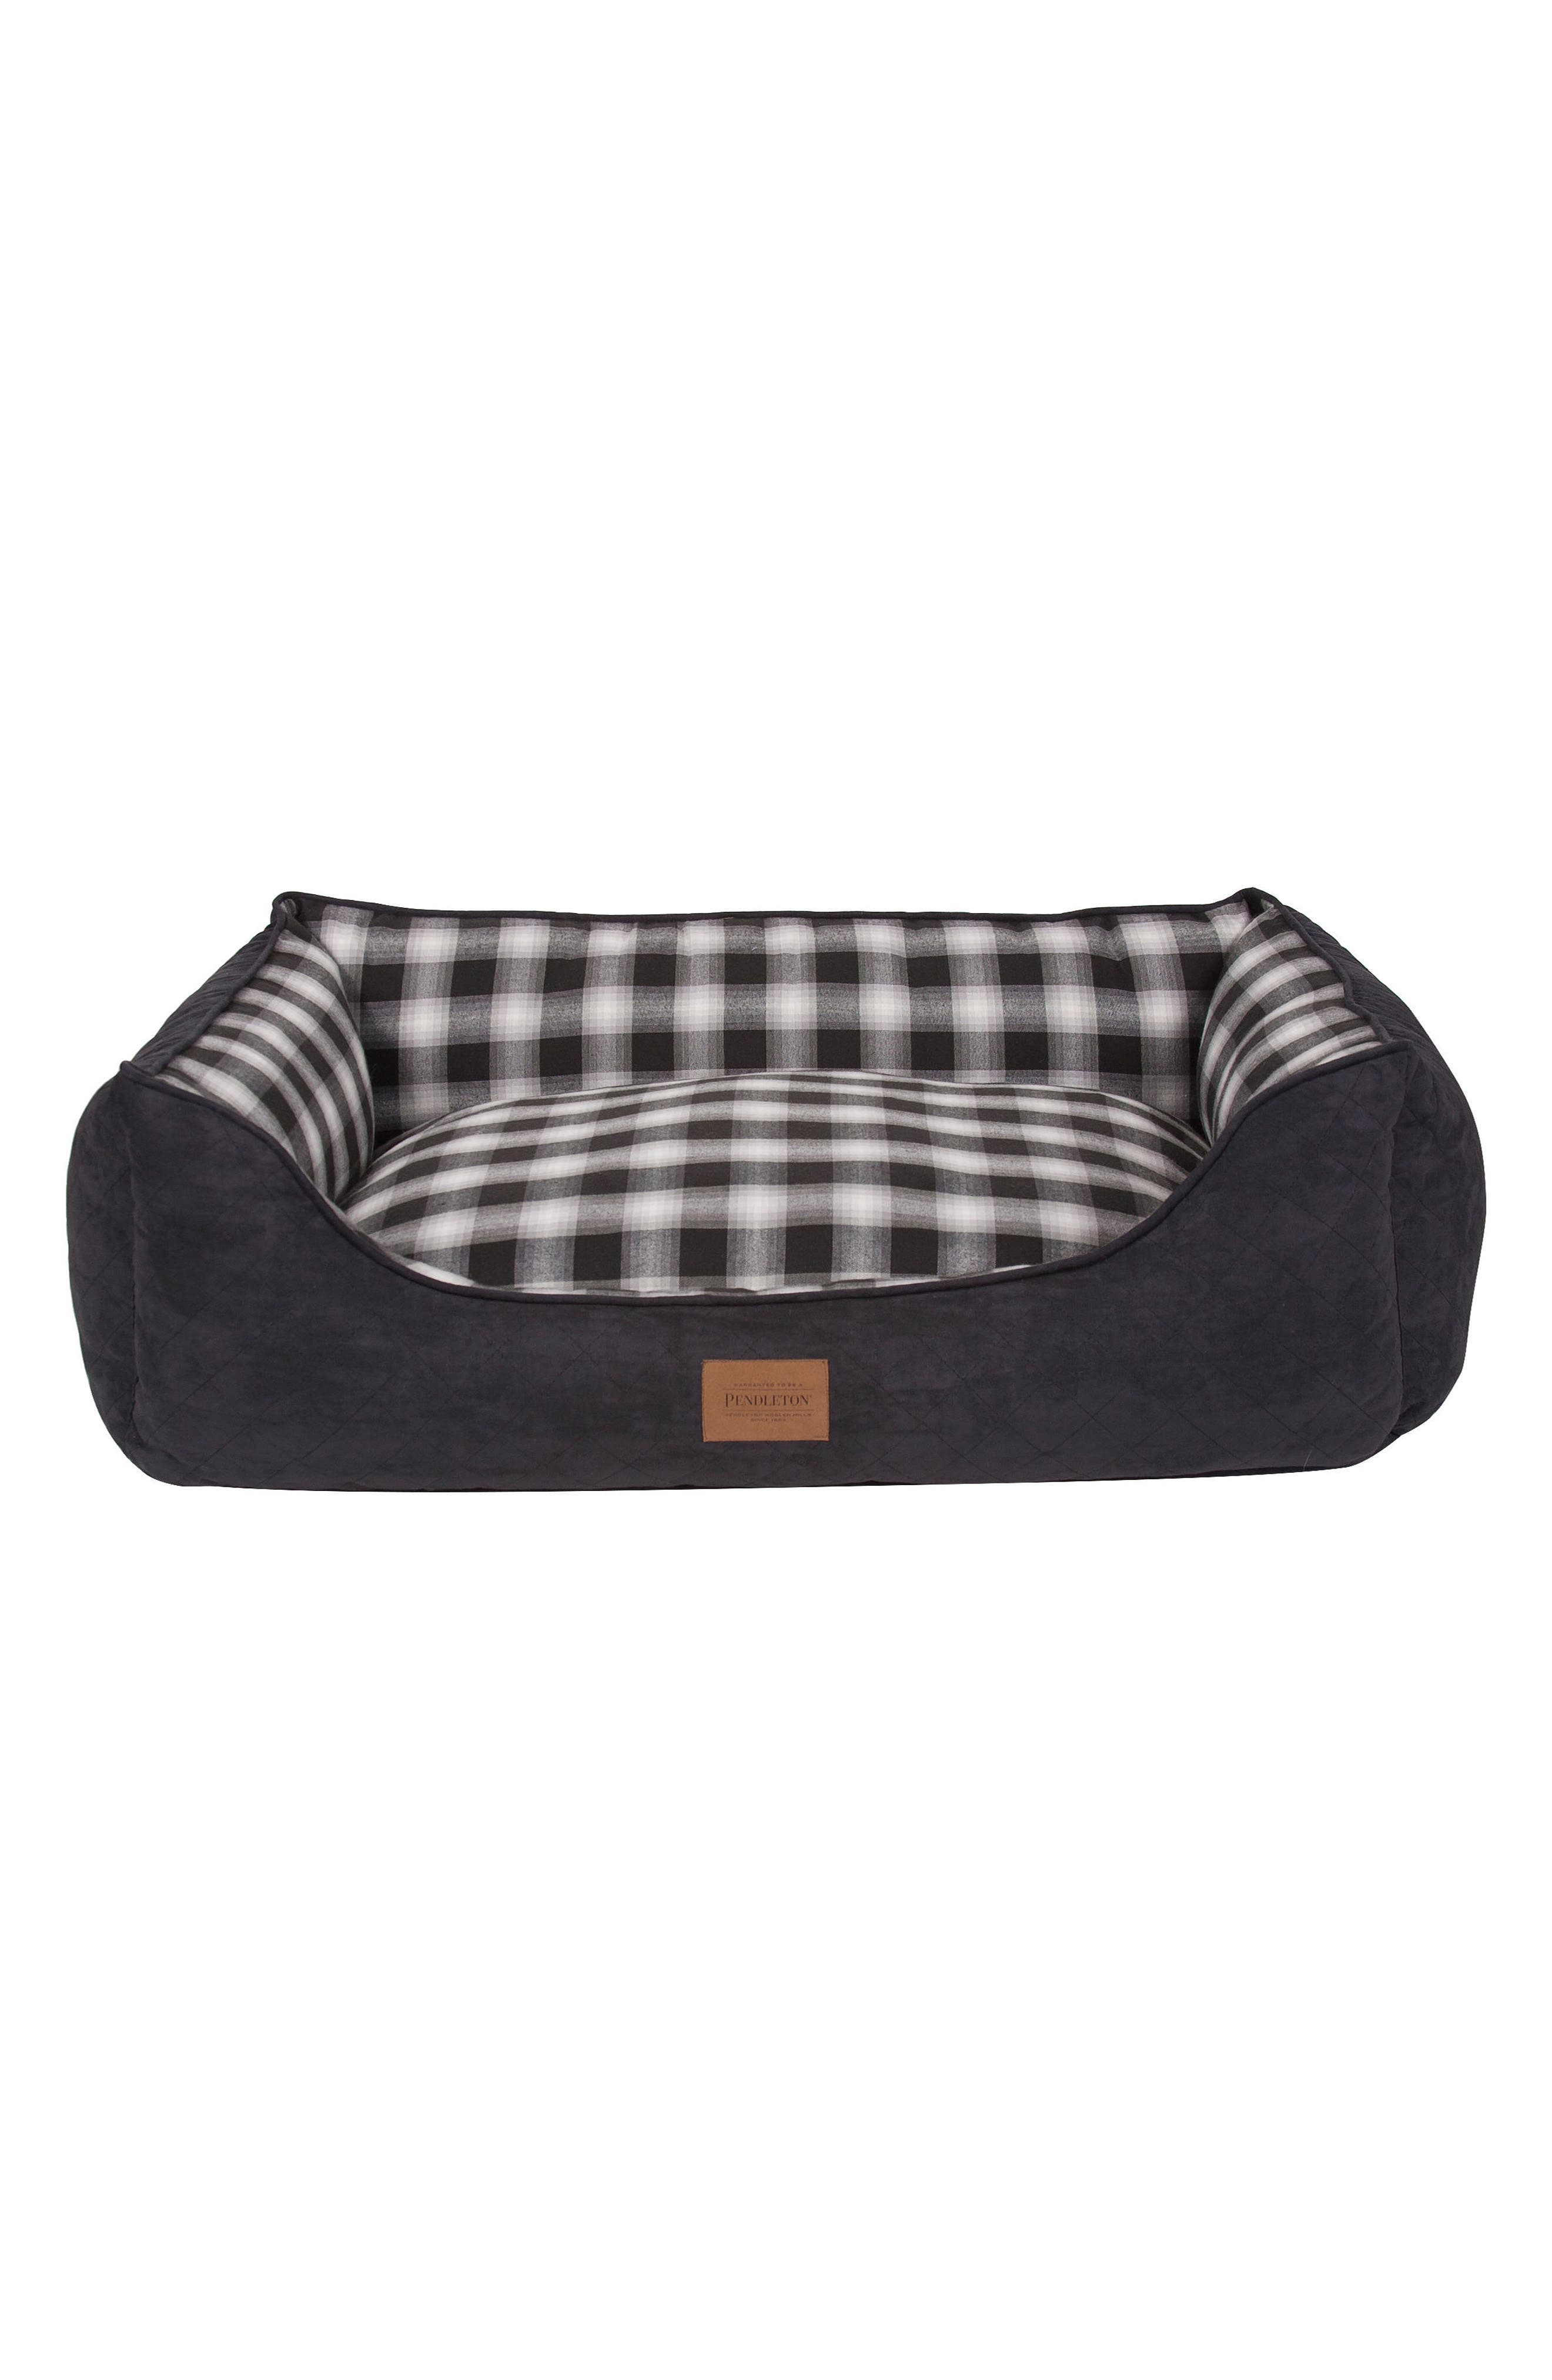 x Pendleton Classics Kuddler Pet Bed,                         Main,                         color, CHARCOAL OMBRE